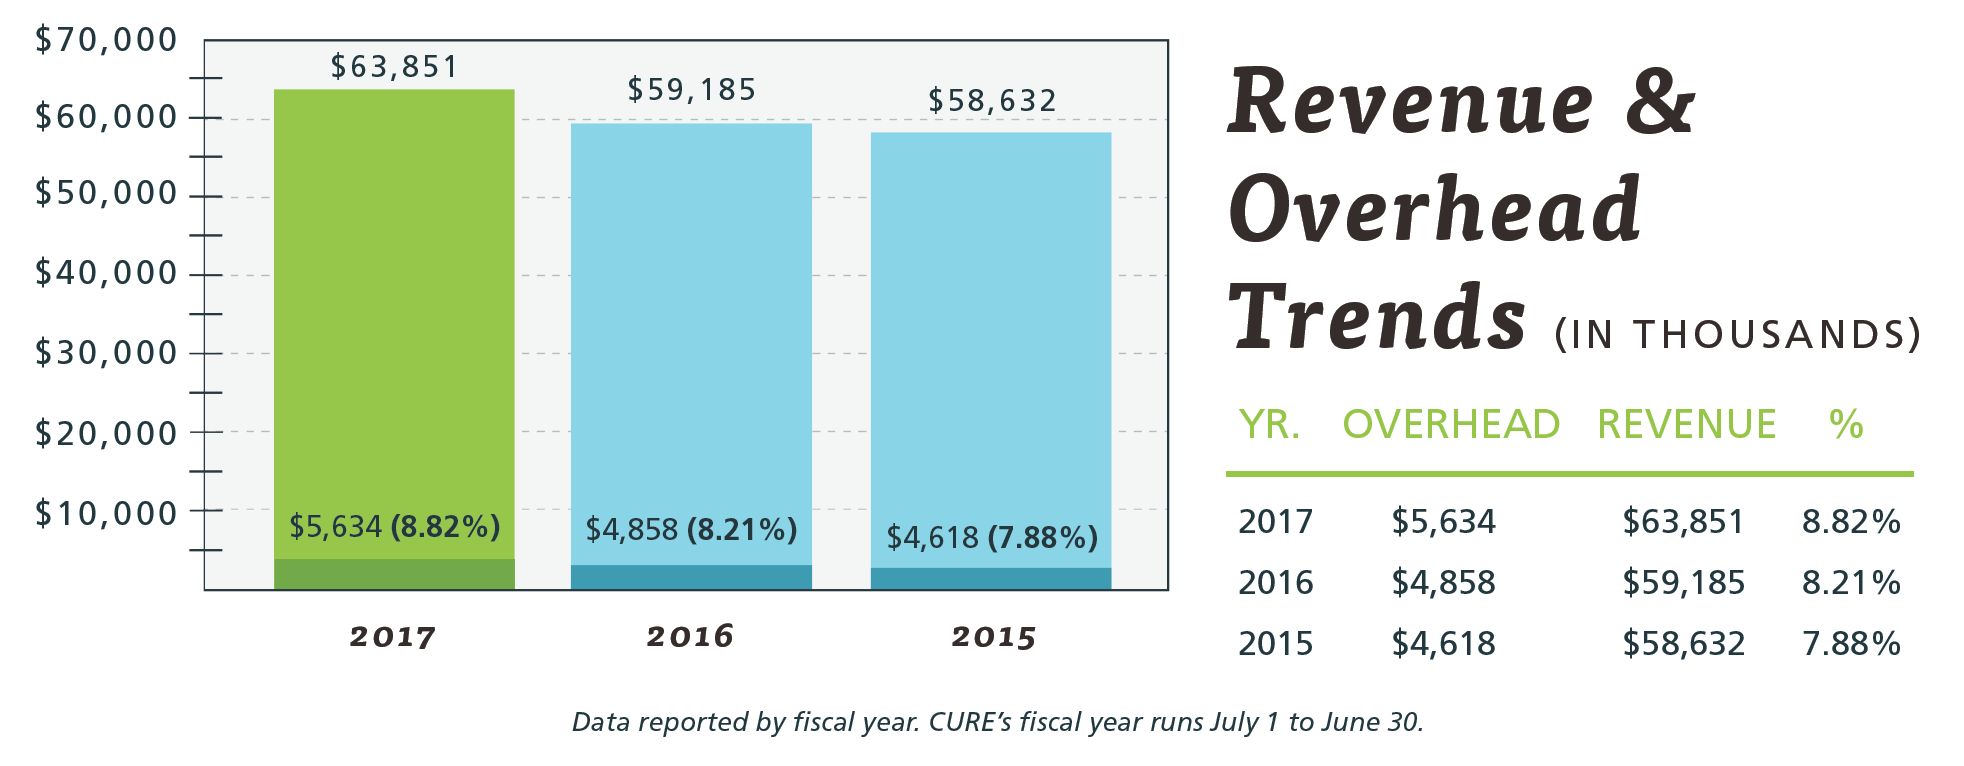 Revenue and Overhead Trends